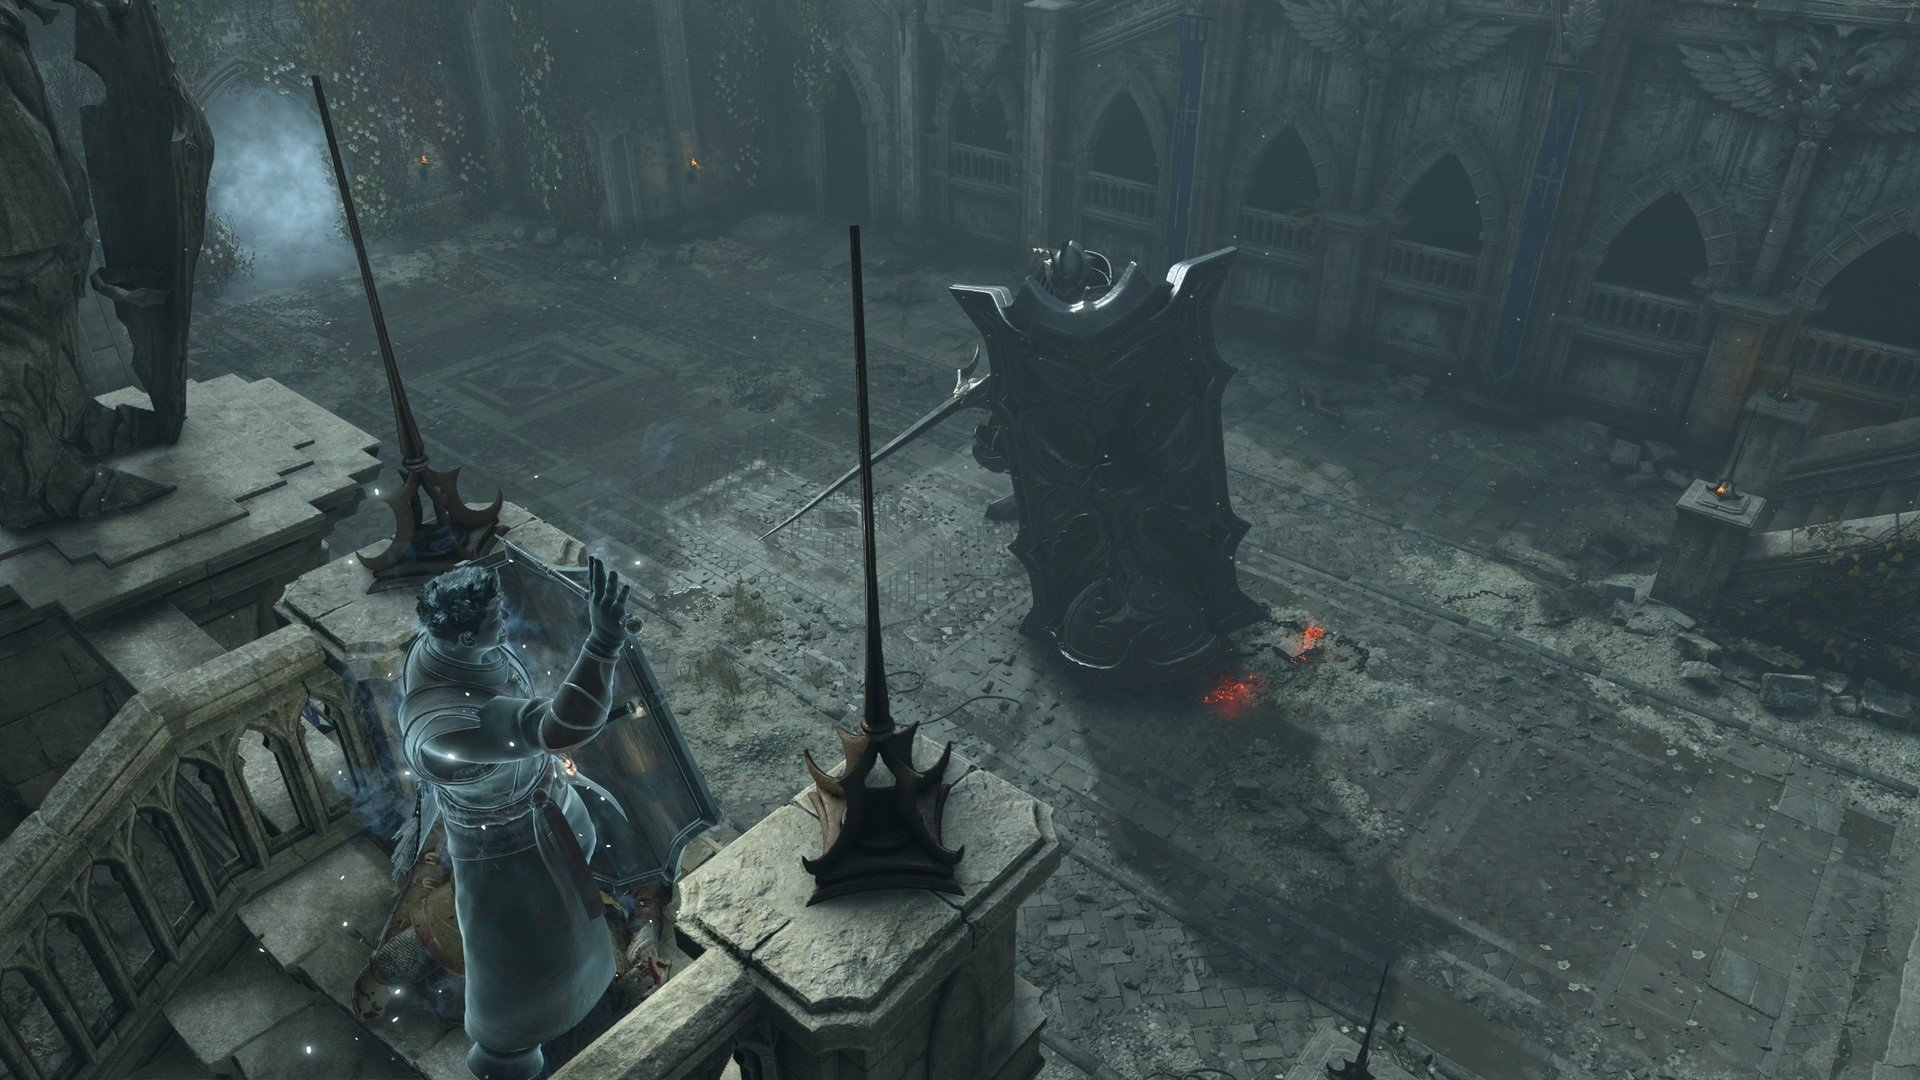 Very Quick tips for the Demon's Souls PS5 remake screenshot